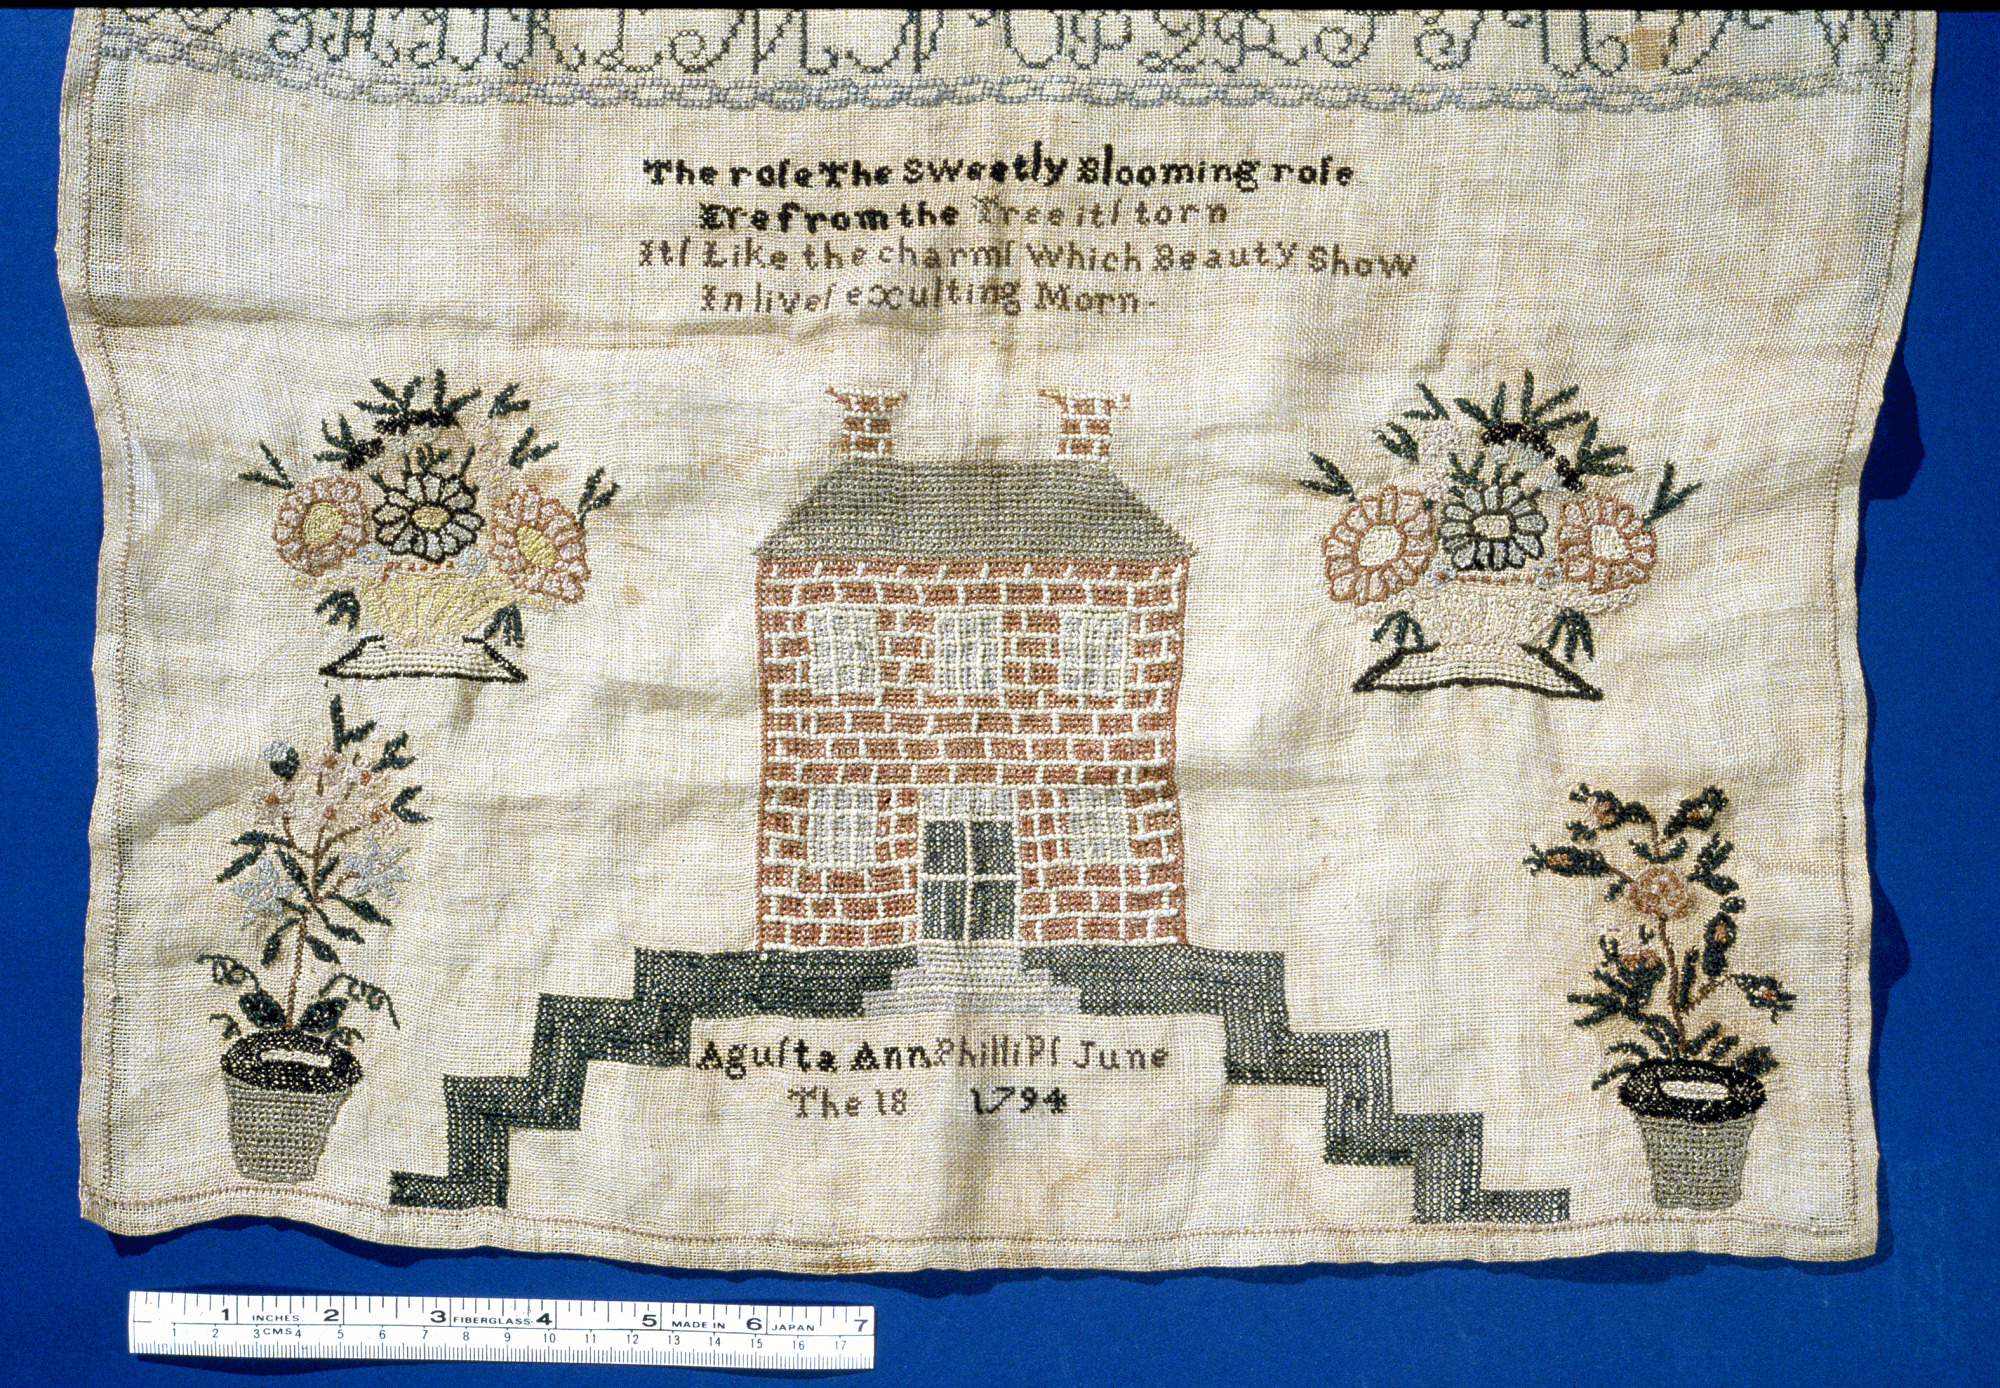 Augusta Ann Phillips's Sampler | National Museum of American History